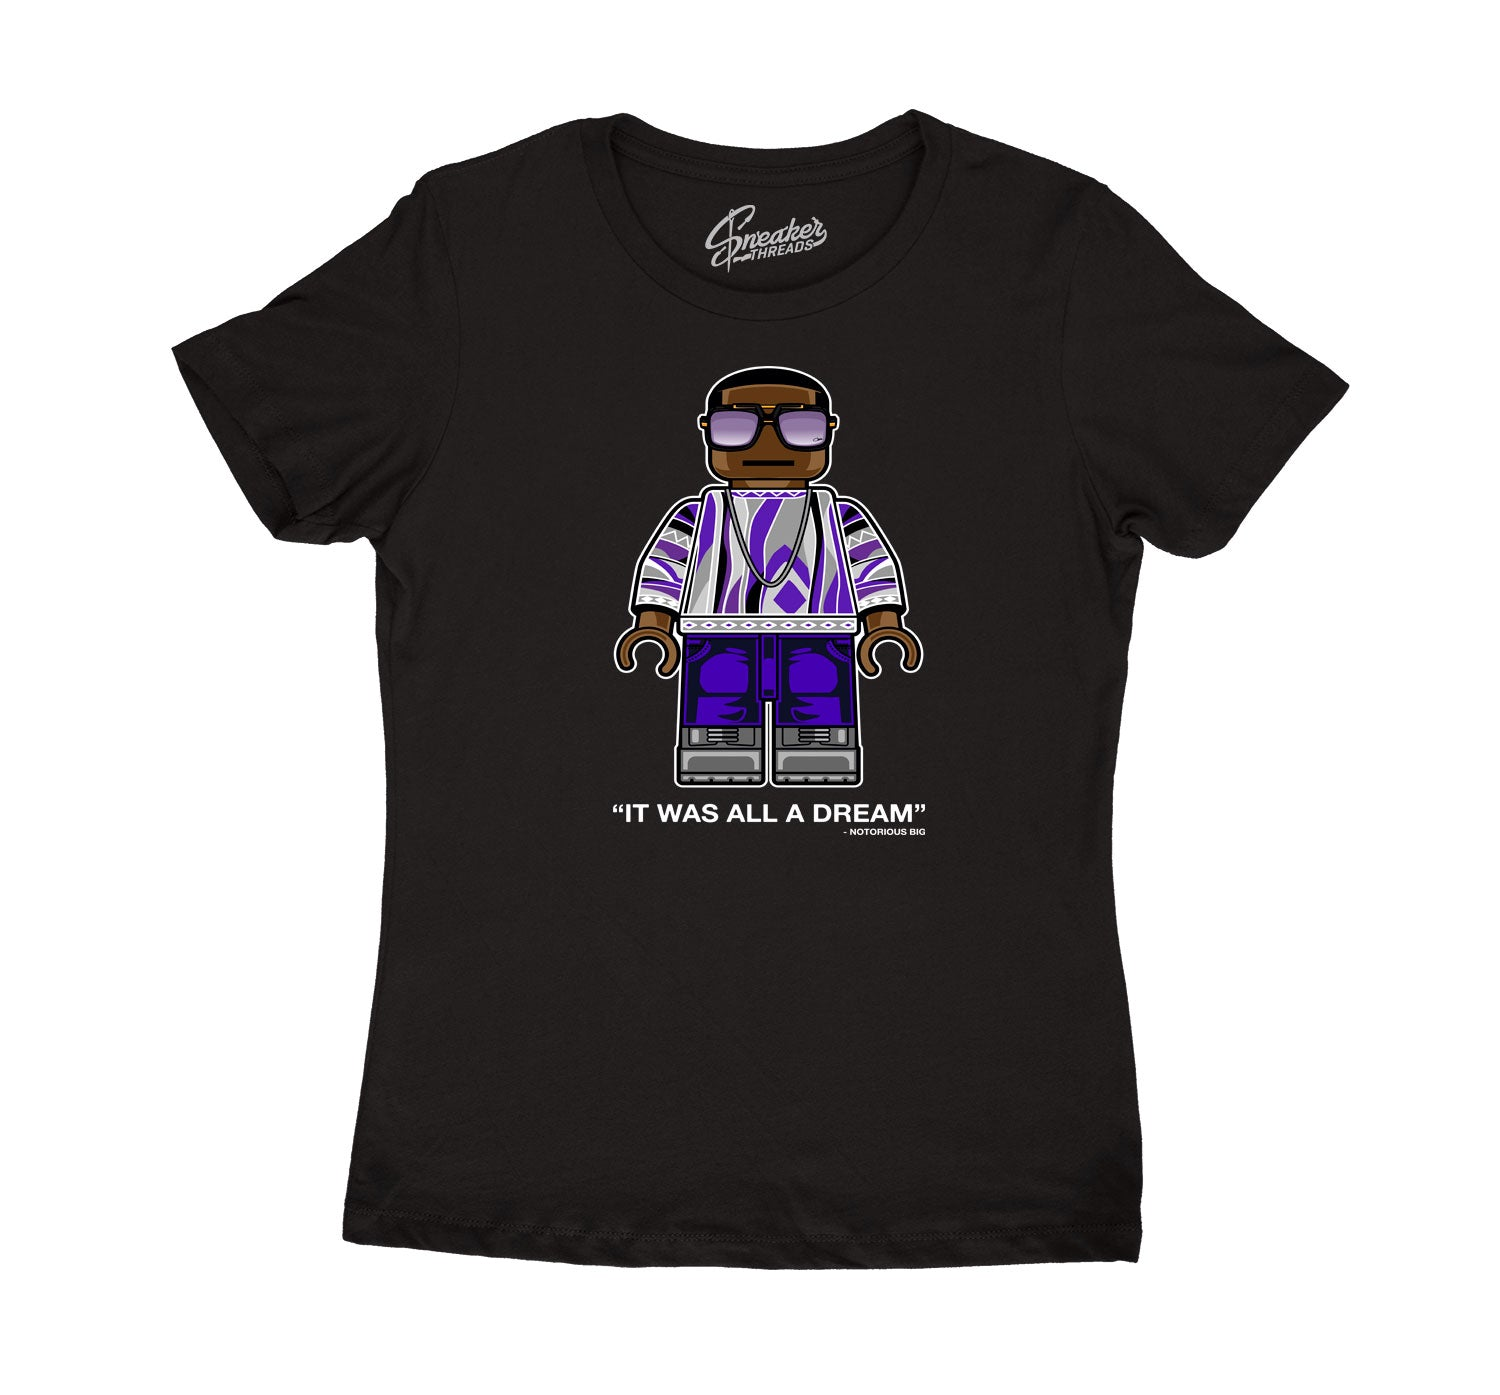 Womens Dark Concord 12 Shirt - BIG Bic - Black